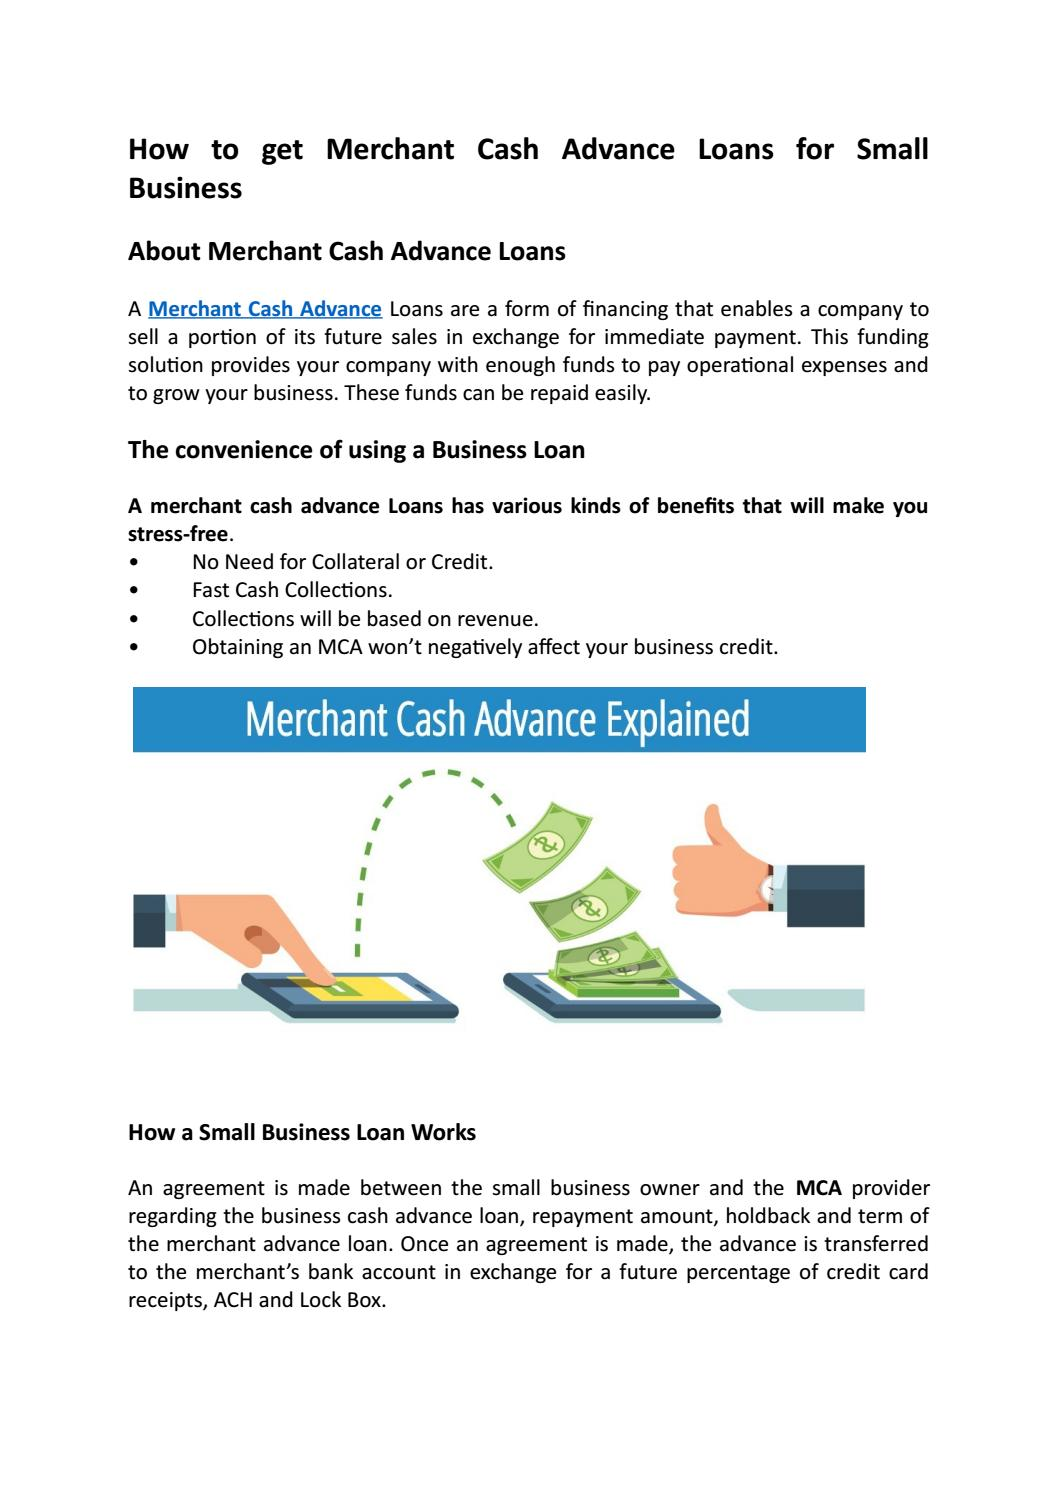 How to get merchant cash advance loans for small business by